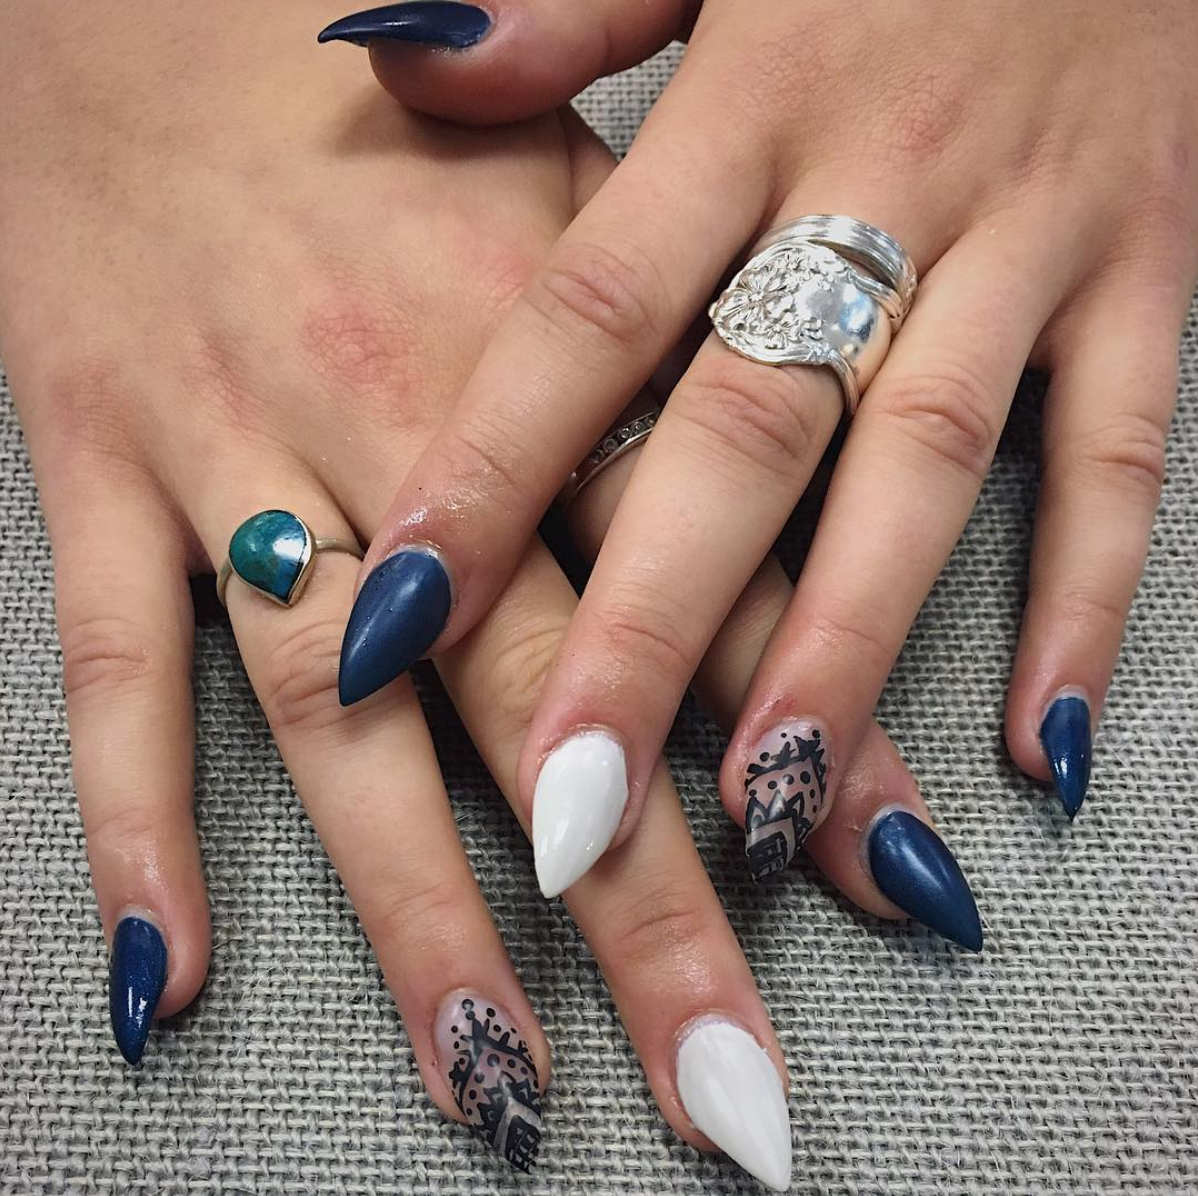 Nail Art Ideas edgy nail art : Edgy nail art at Oliver Finley Academy of Cosmetology | Nail Art ...